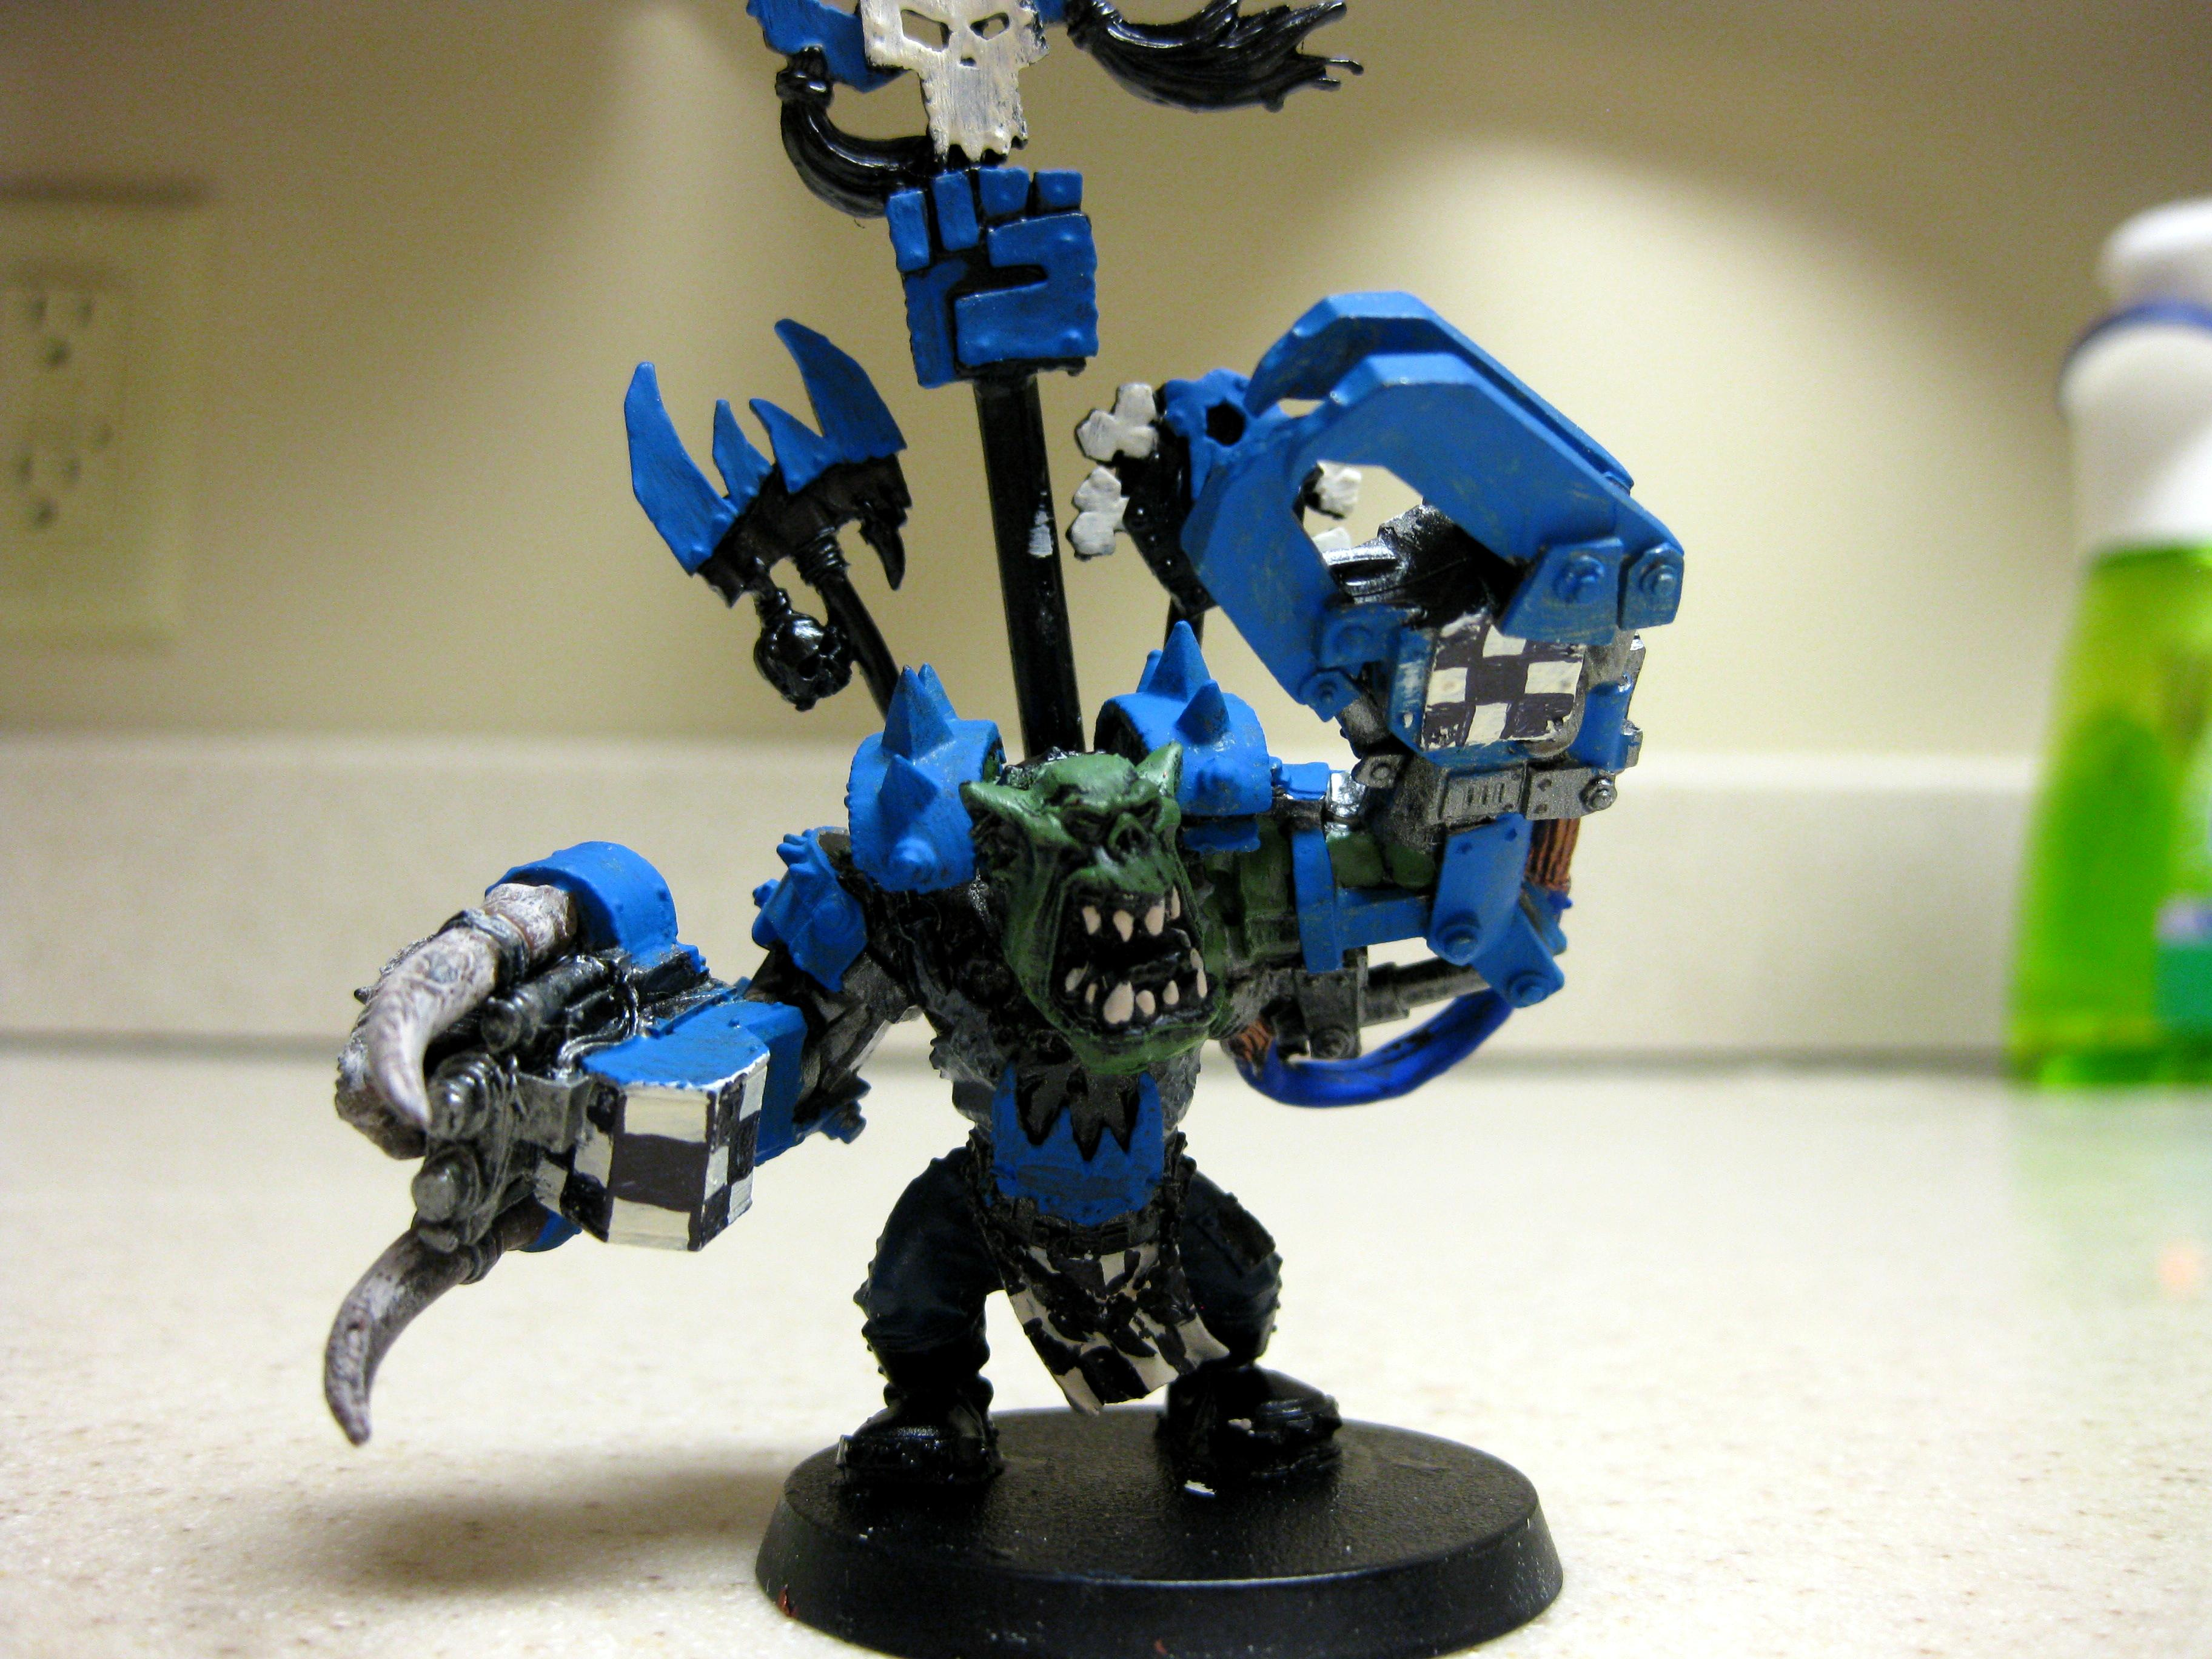 Conversion, Converted Ork Warboss, Orks, Warboss